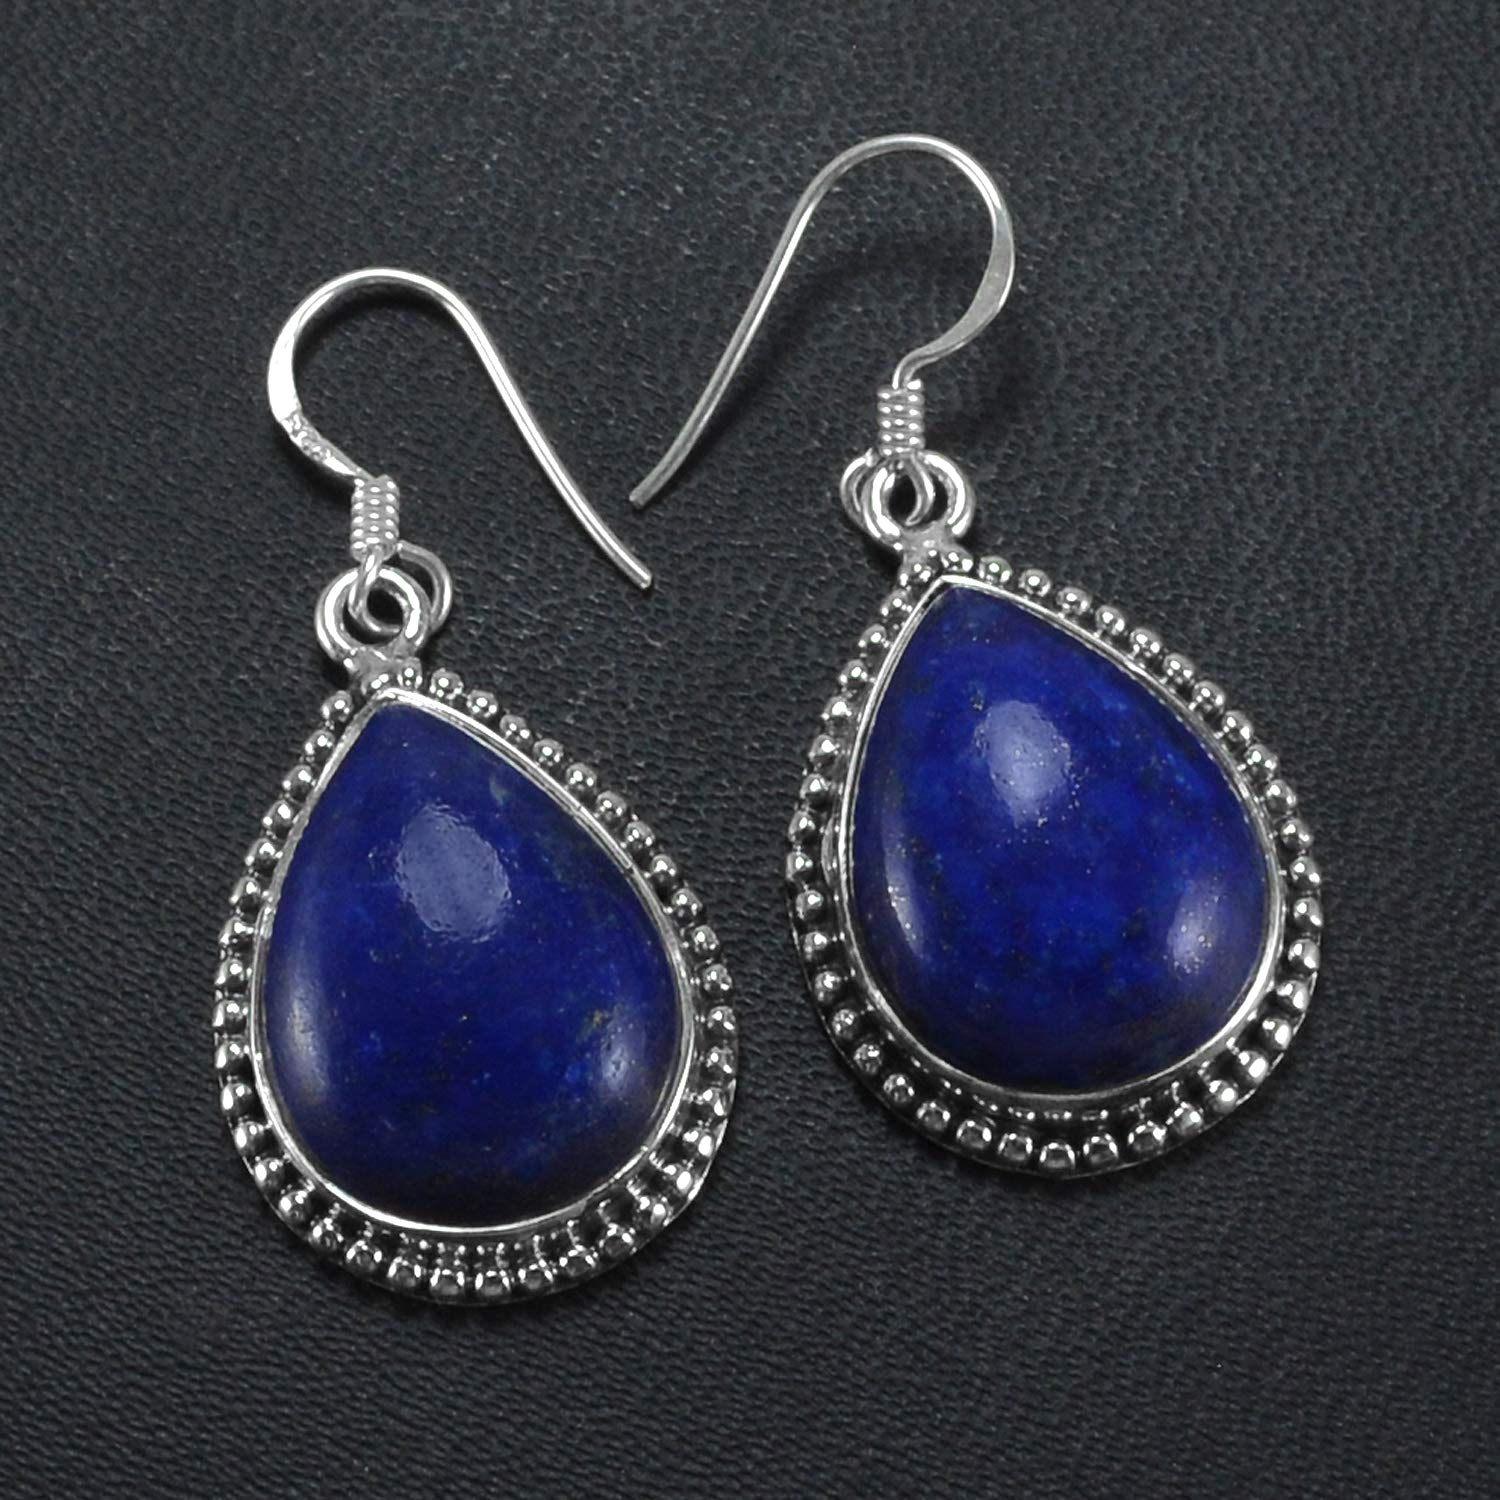 Saamarth Impex Lapis Lazuli 925 Sterling Silver Dangle Earring PG-155710